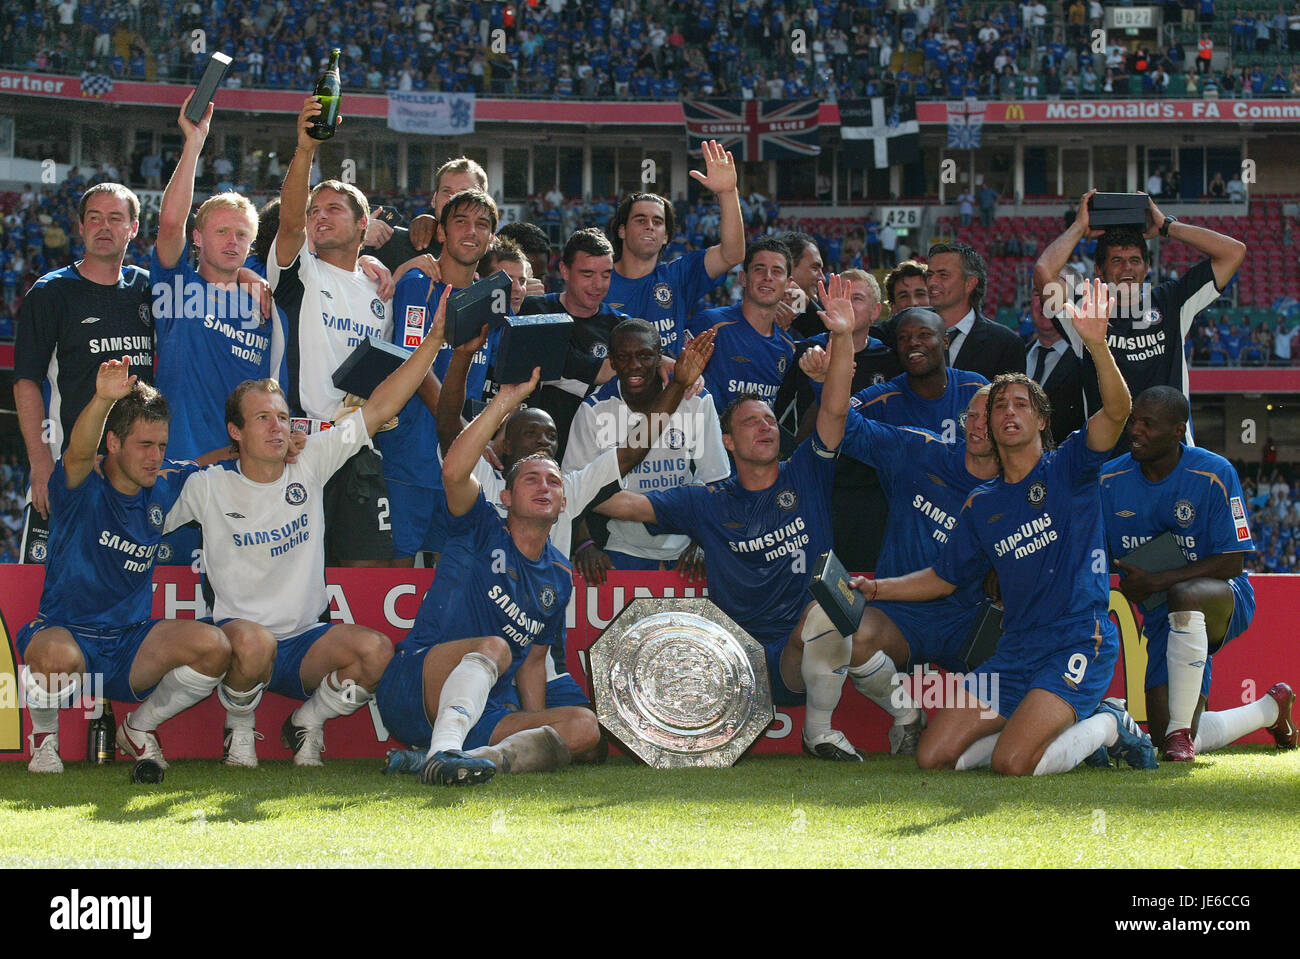 CHELSEA WITH COMMUNITY SHEILD FA COMMUNITY SHIELD WINNERS THE MILLENNIUM STADIUM CARDIFF WALES 07 August 2005 - Stock Image